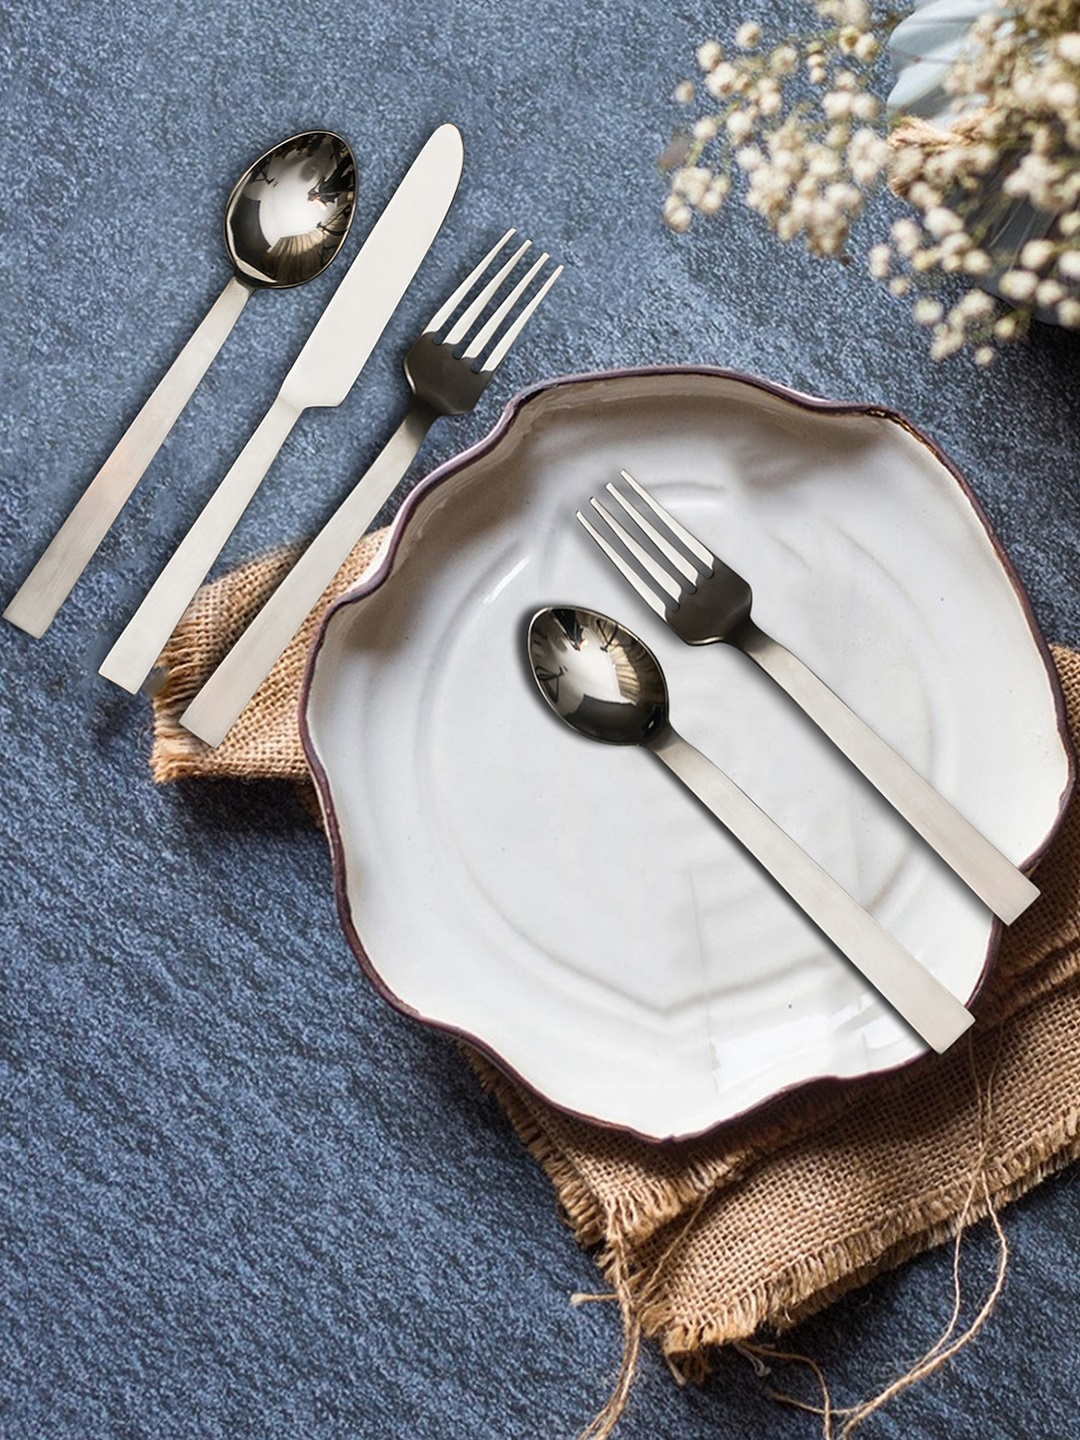 nestroots Set of 5 Silver Toned Stainless Steel Cutlery Set